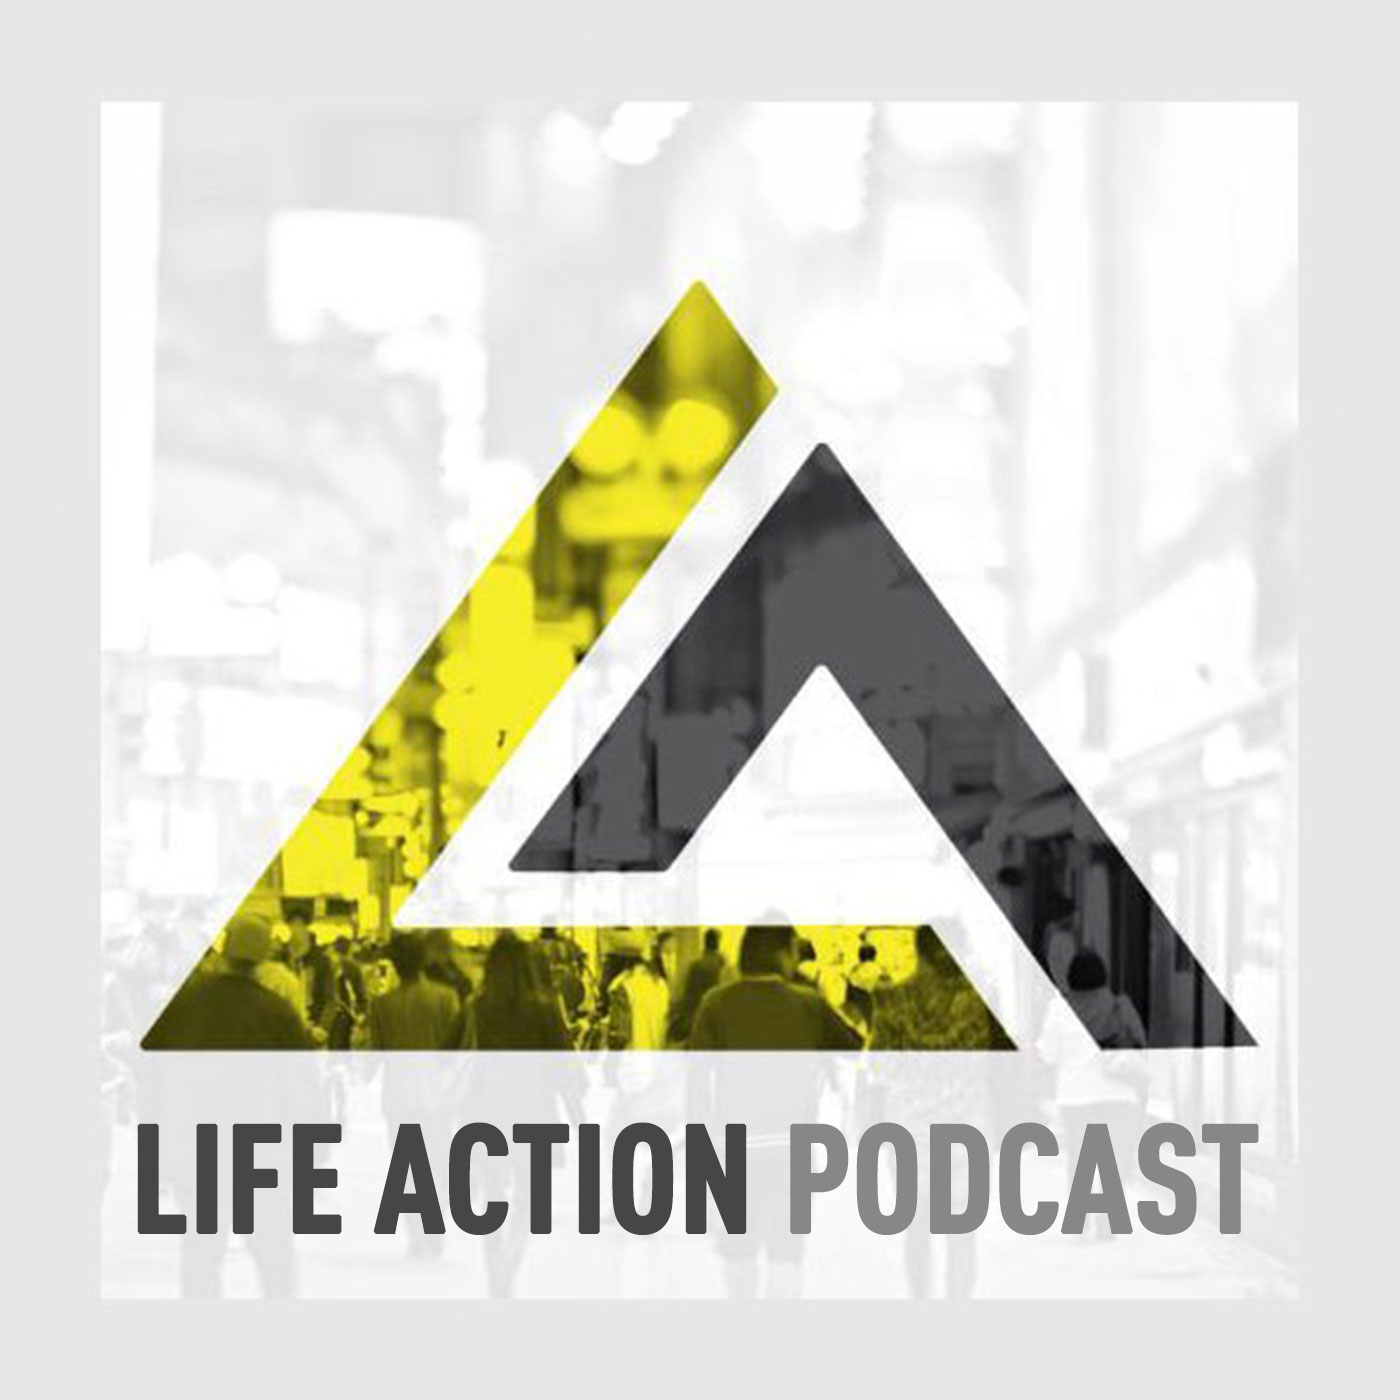 Life Action